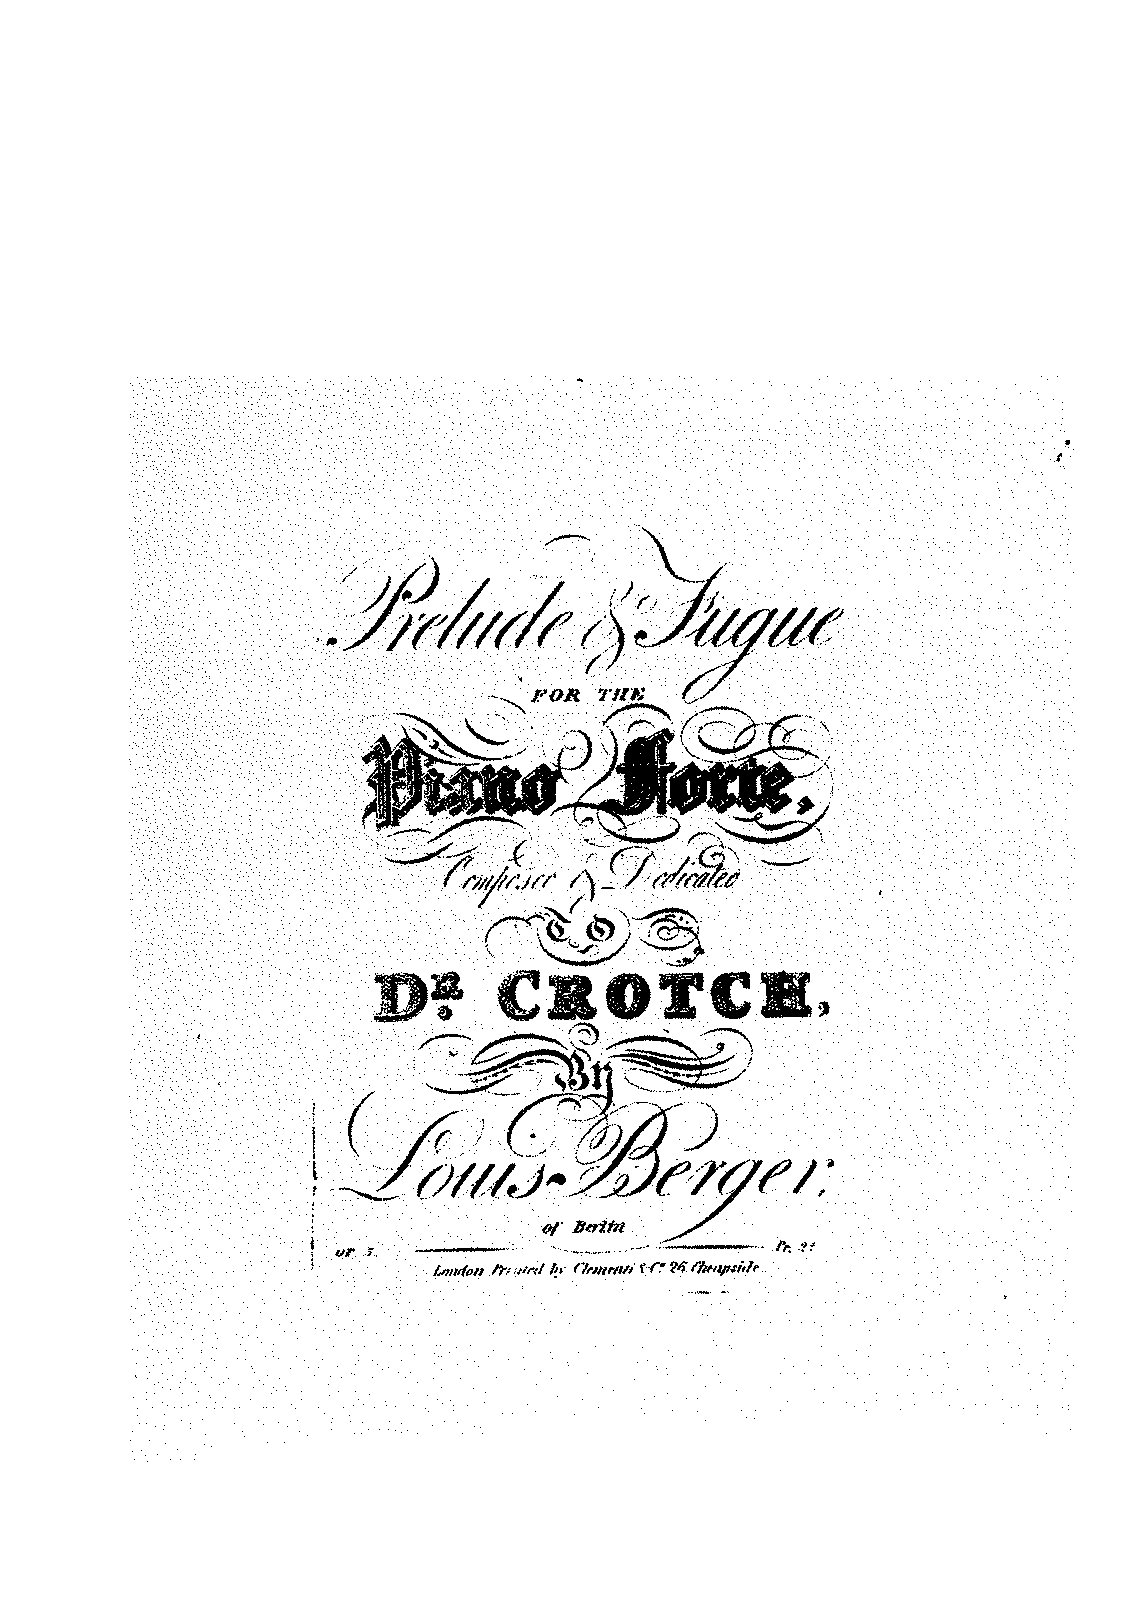 PMLP173994-berger1777-1839 prelude and fugue.pdf